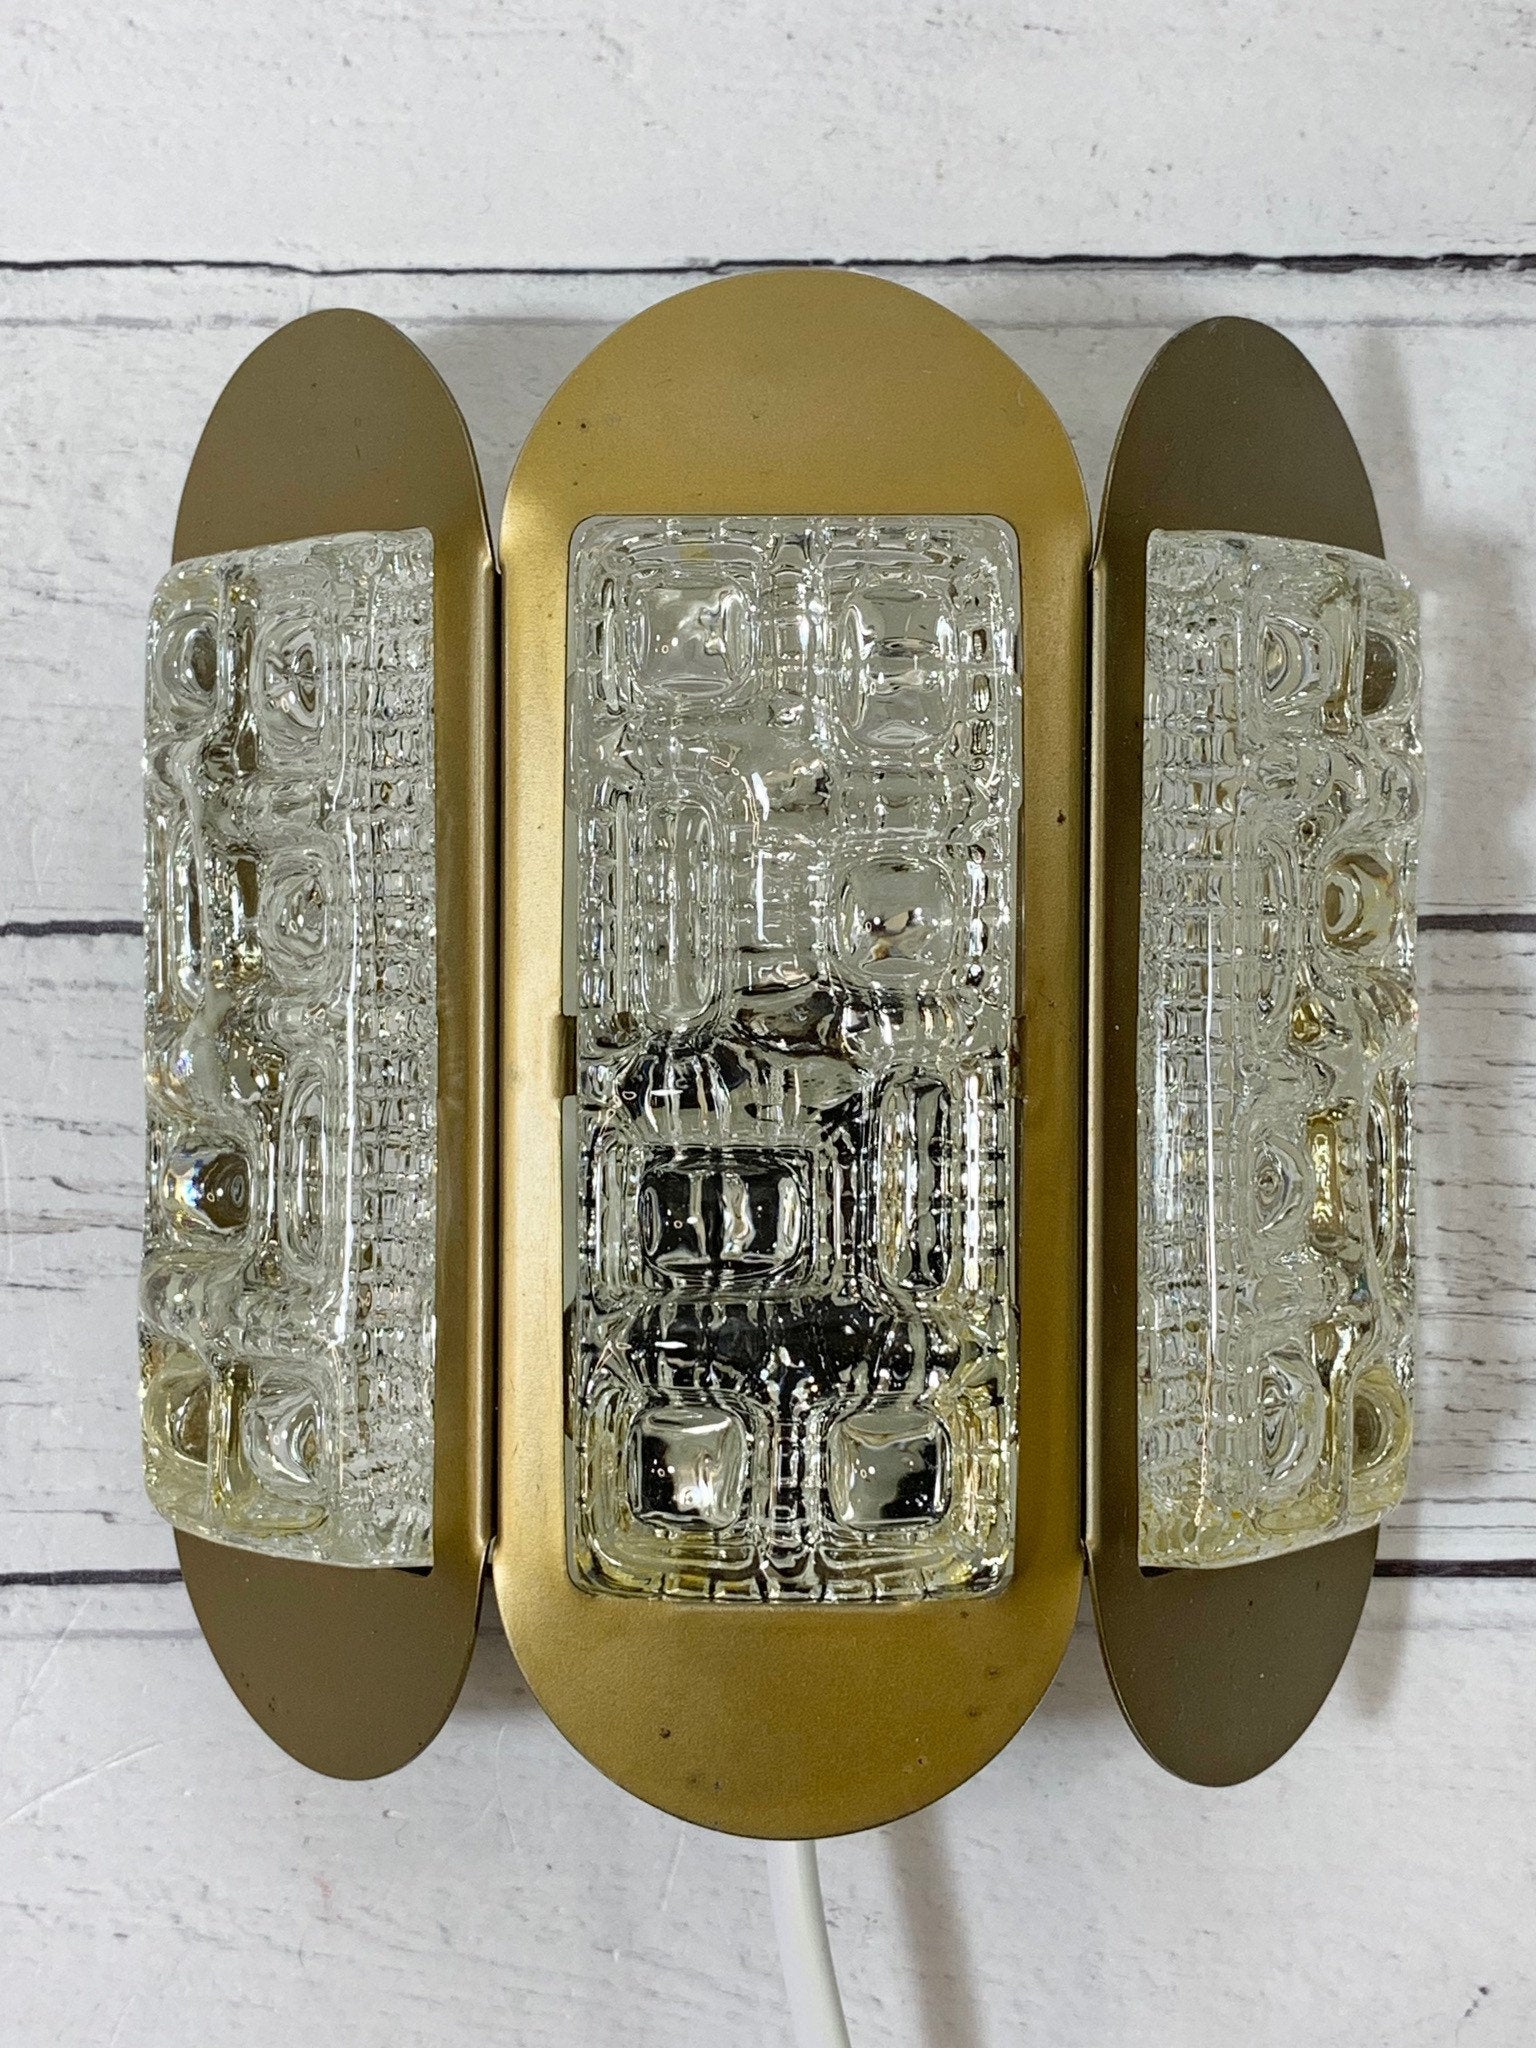 Lyskaer Belysning Danish Sconce Wall Lamp Swedish Glass Art Deco Style Retro